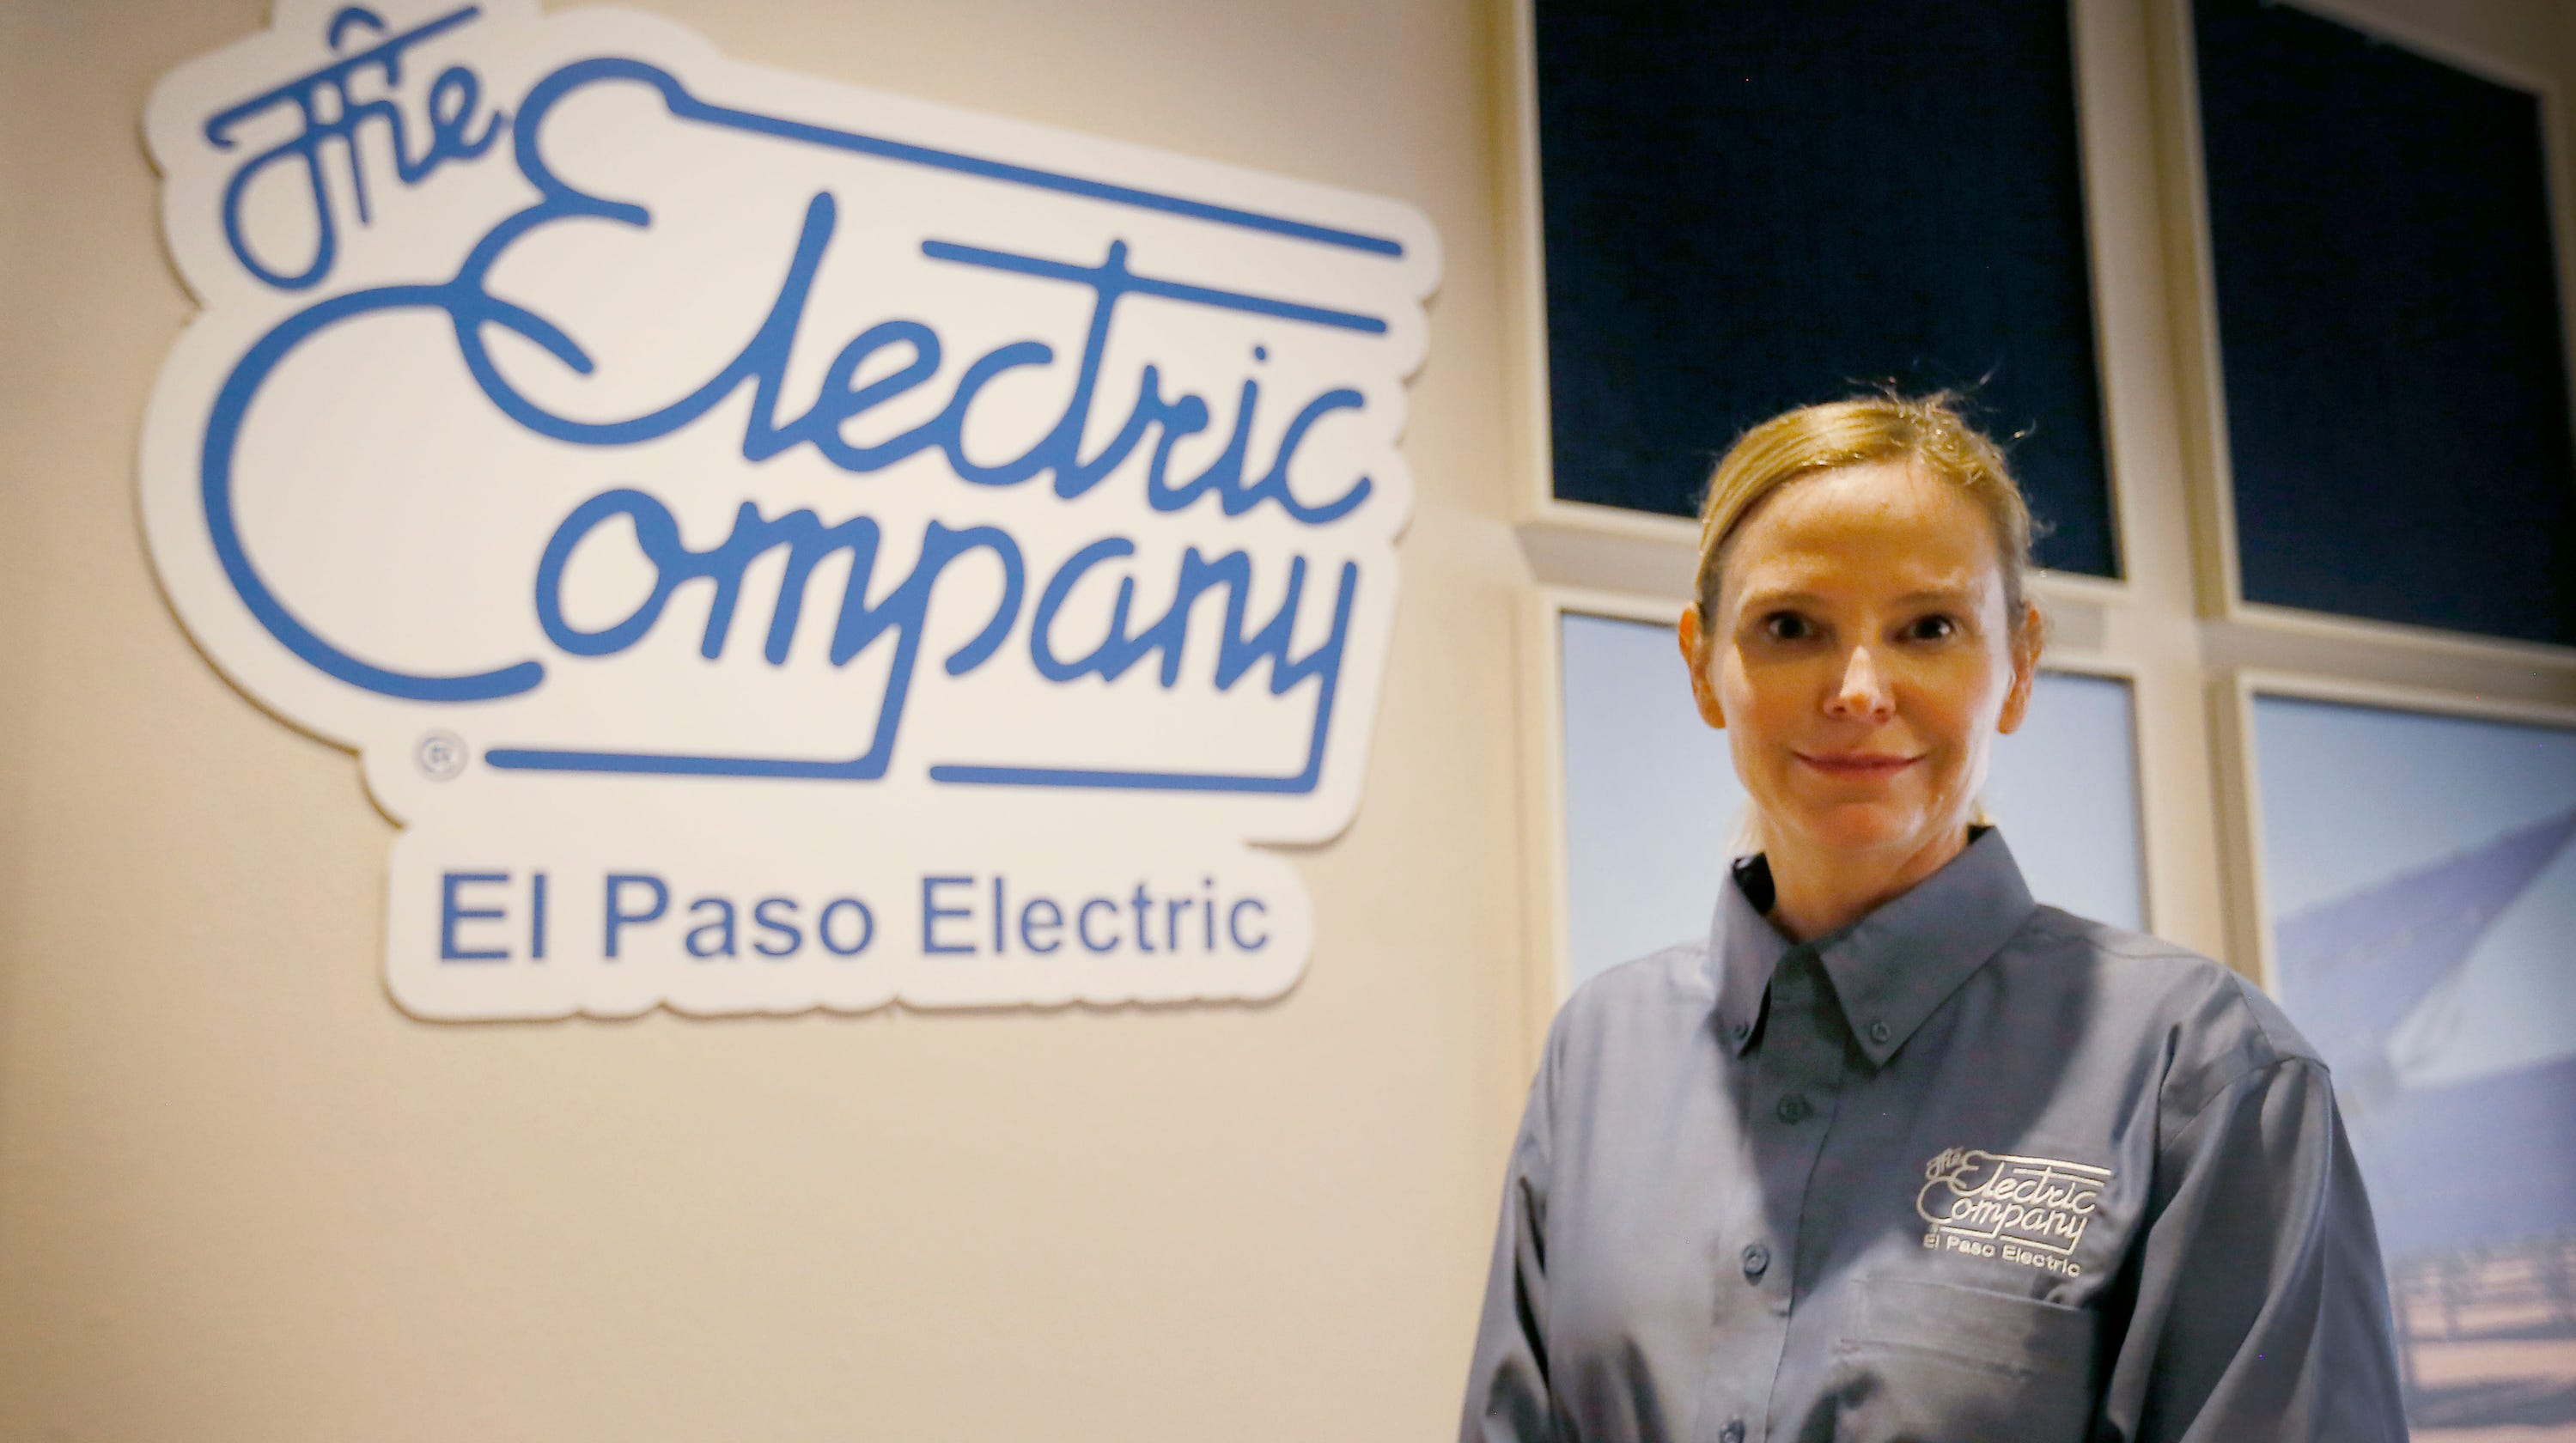 El Paso Electric Agrees To Be Sold To J.P. Morgan